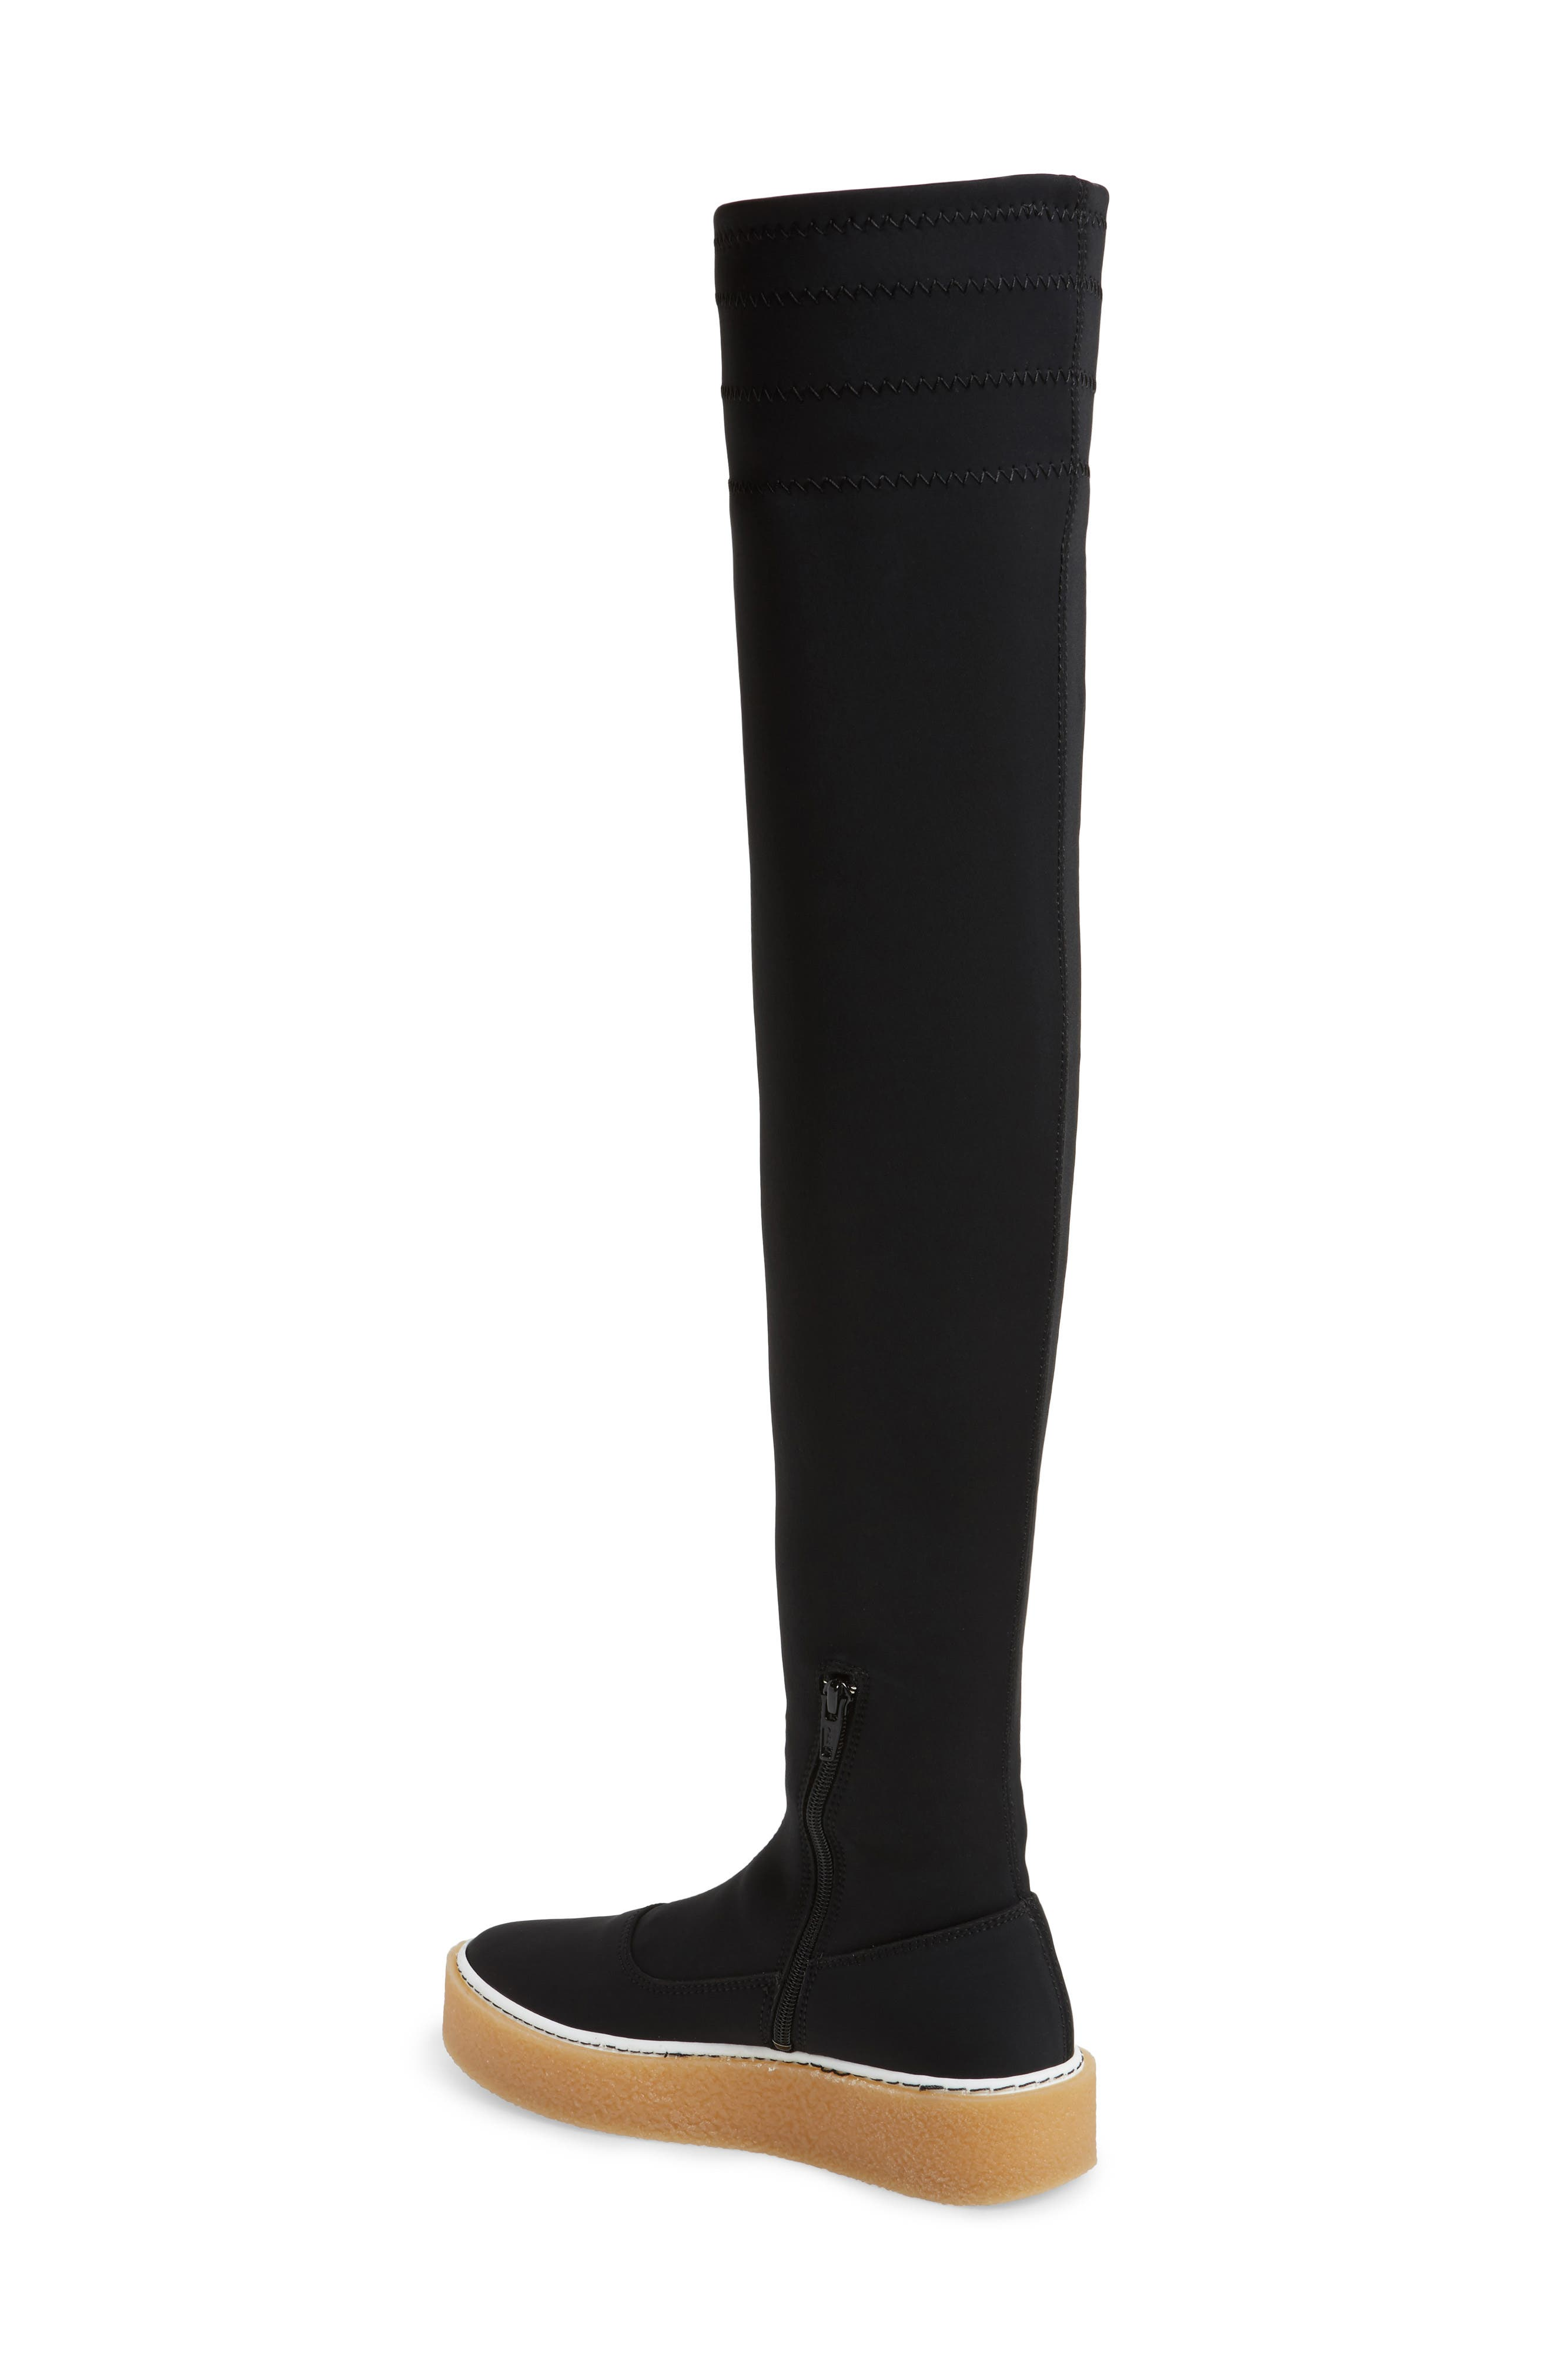 Outer Limits Thigh High Boot,                             Alternate thumbnail 2, color,                             001